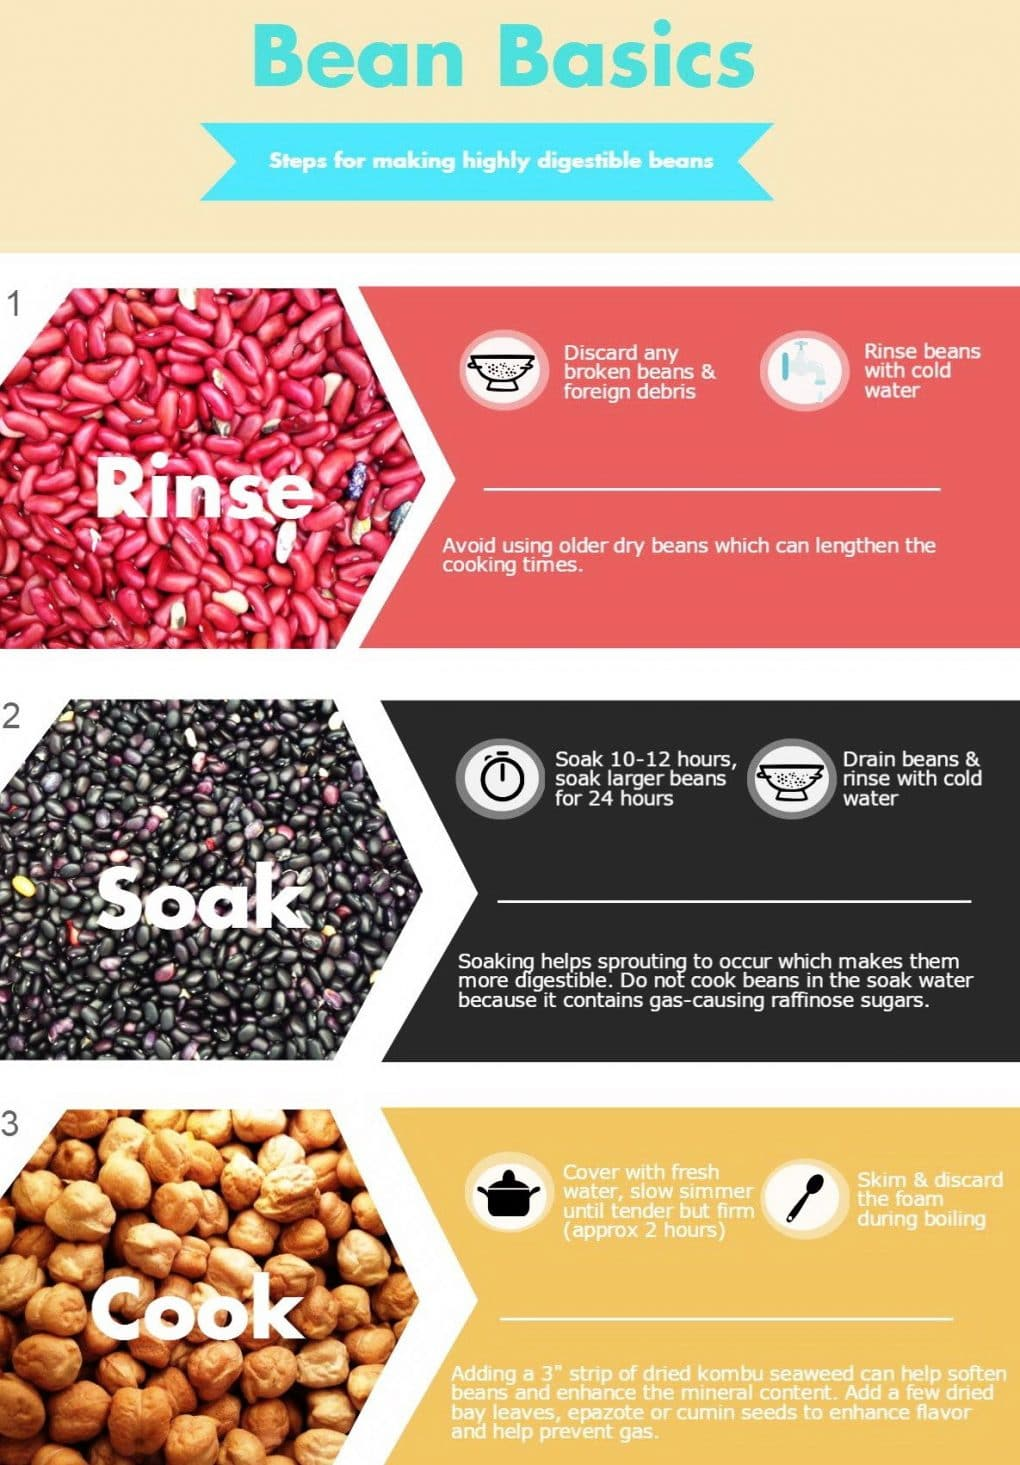 Why Baked Beans Give You Gas and How to Stop It